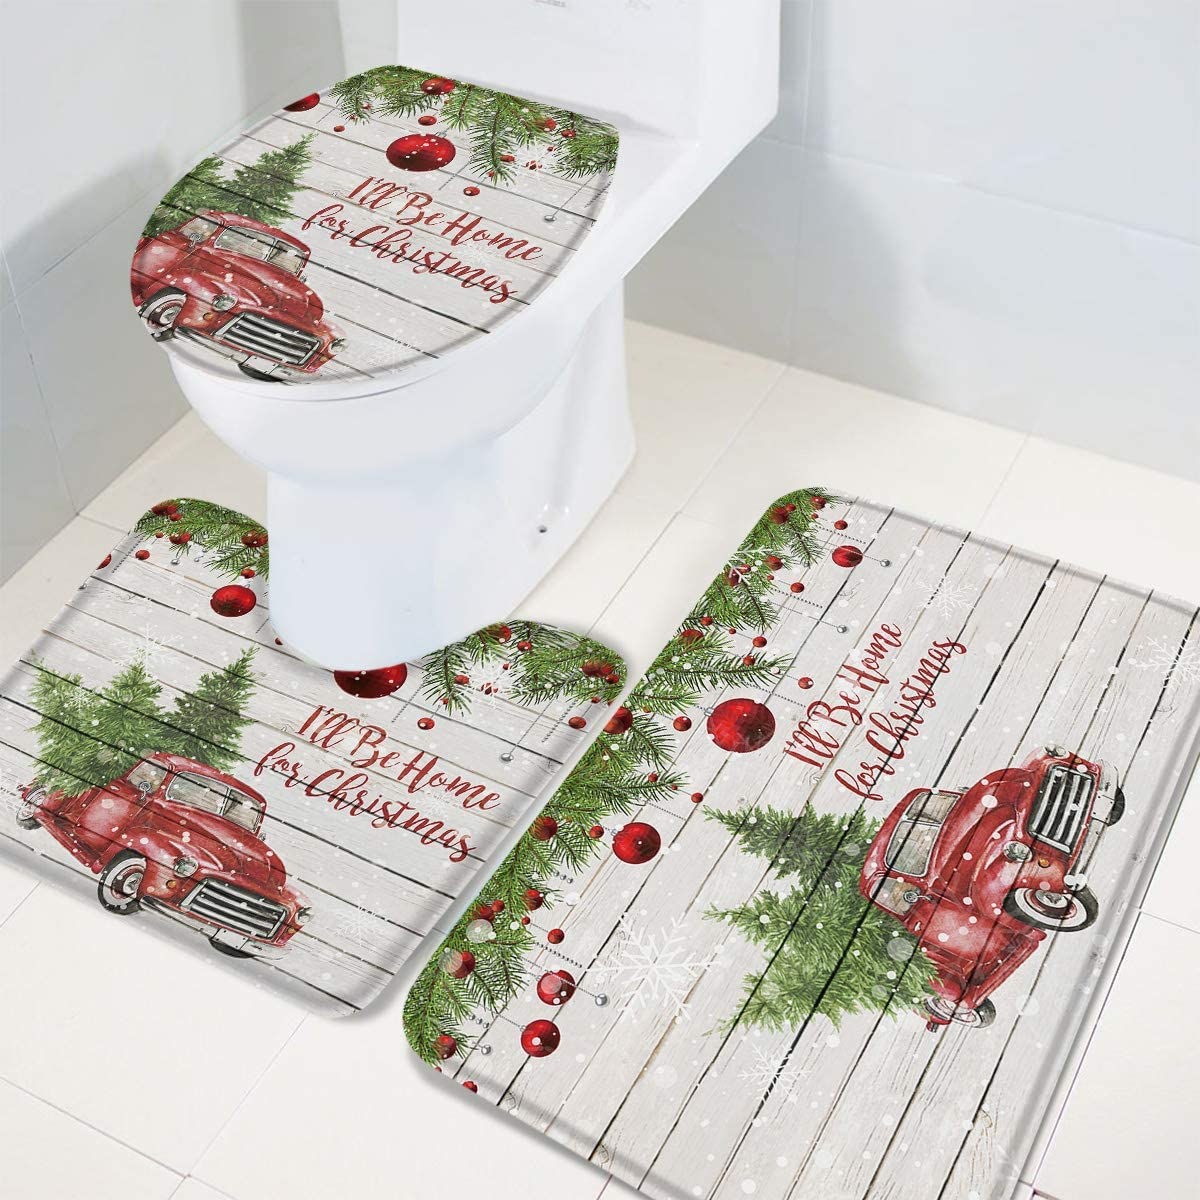 3 Piece Bathroom Mats and Rugs Sets Kids Bathroom Sets Non Slip Bath Rug Set with Rubber Backing Christmas Bathroom Decor Retro Red Truck Wooden Plank